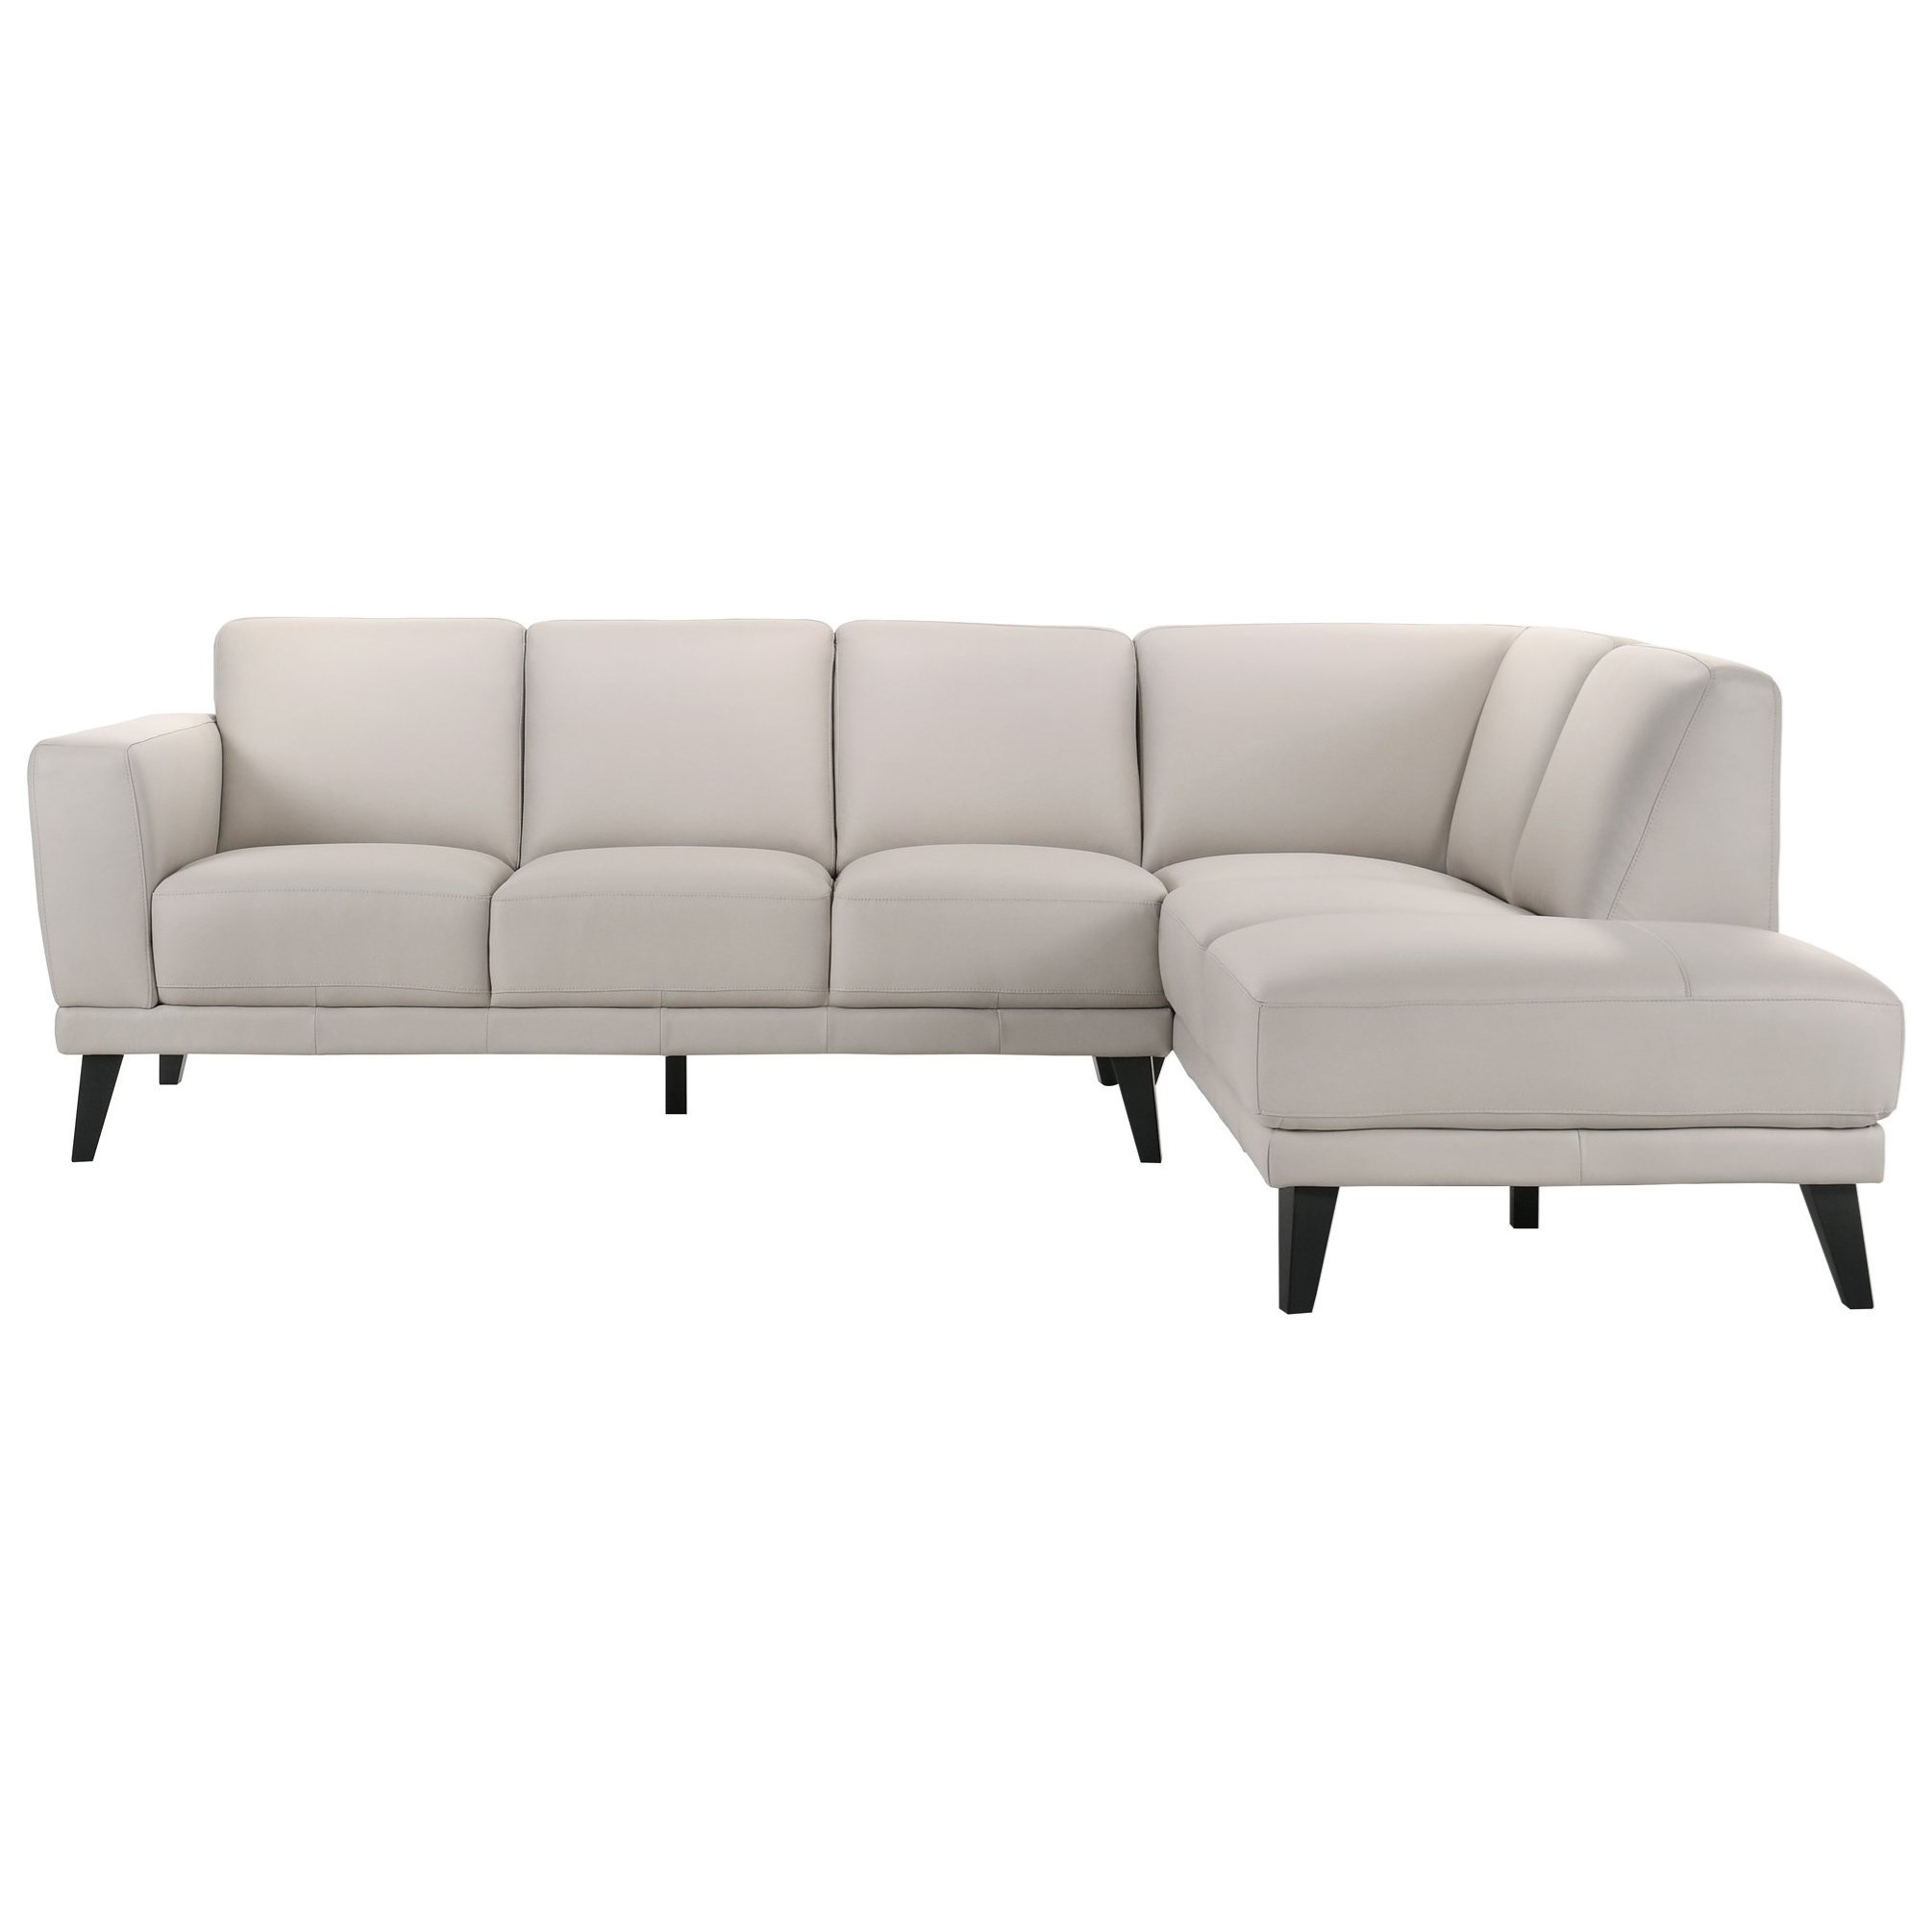 Altamura 5-Seat Sectional w/ RAF Chaise by New Classic at Carolina Direct